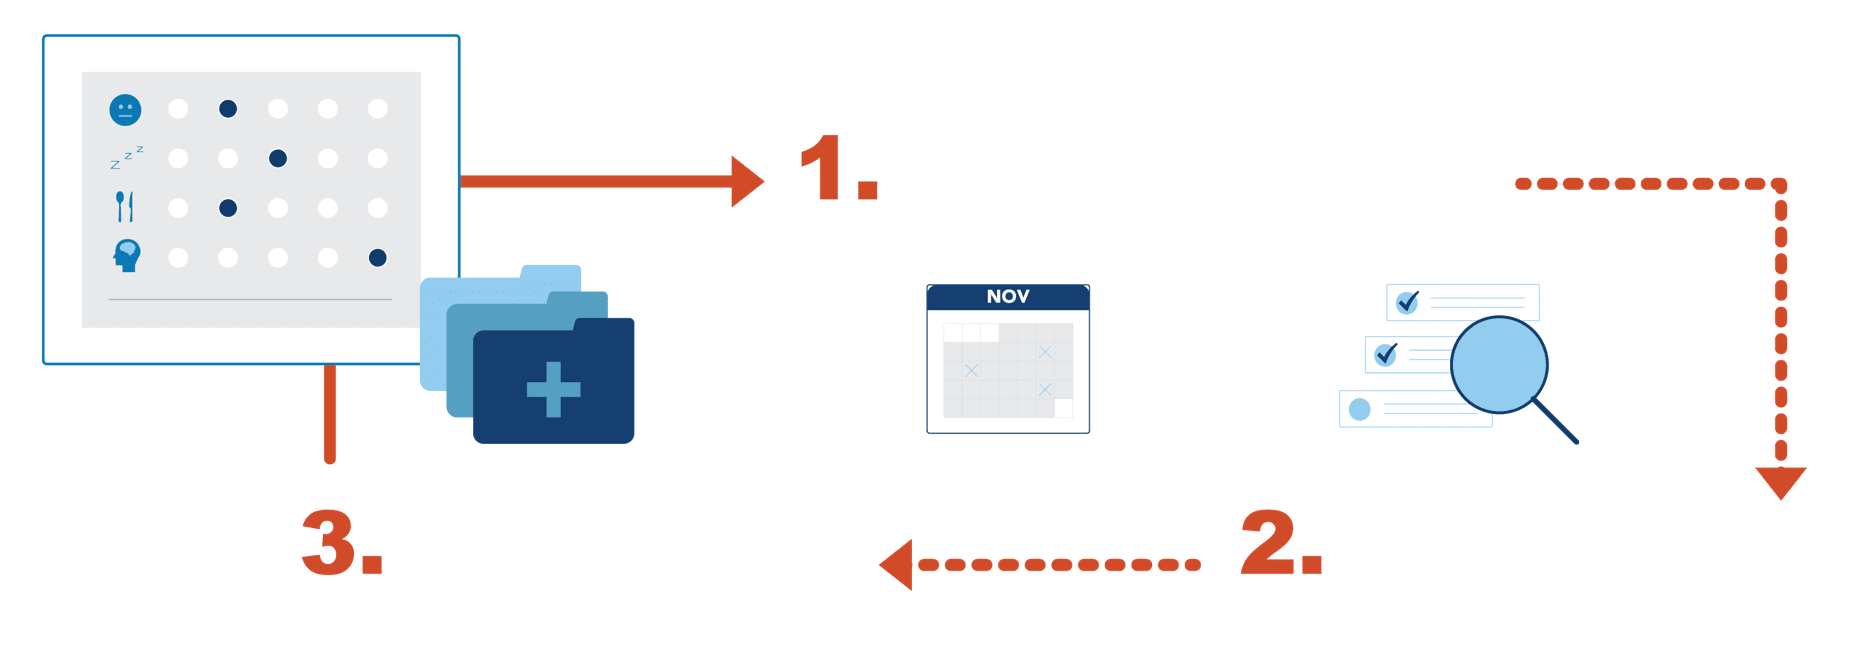 Flow diagram showing the process of obtaining feedback from patients to fine tune care over time